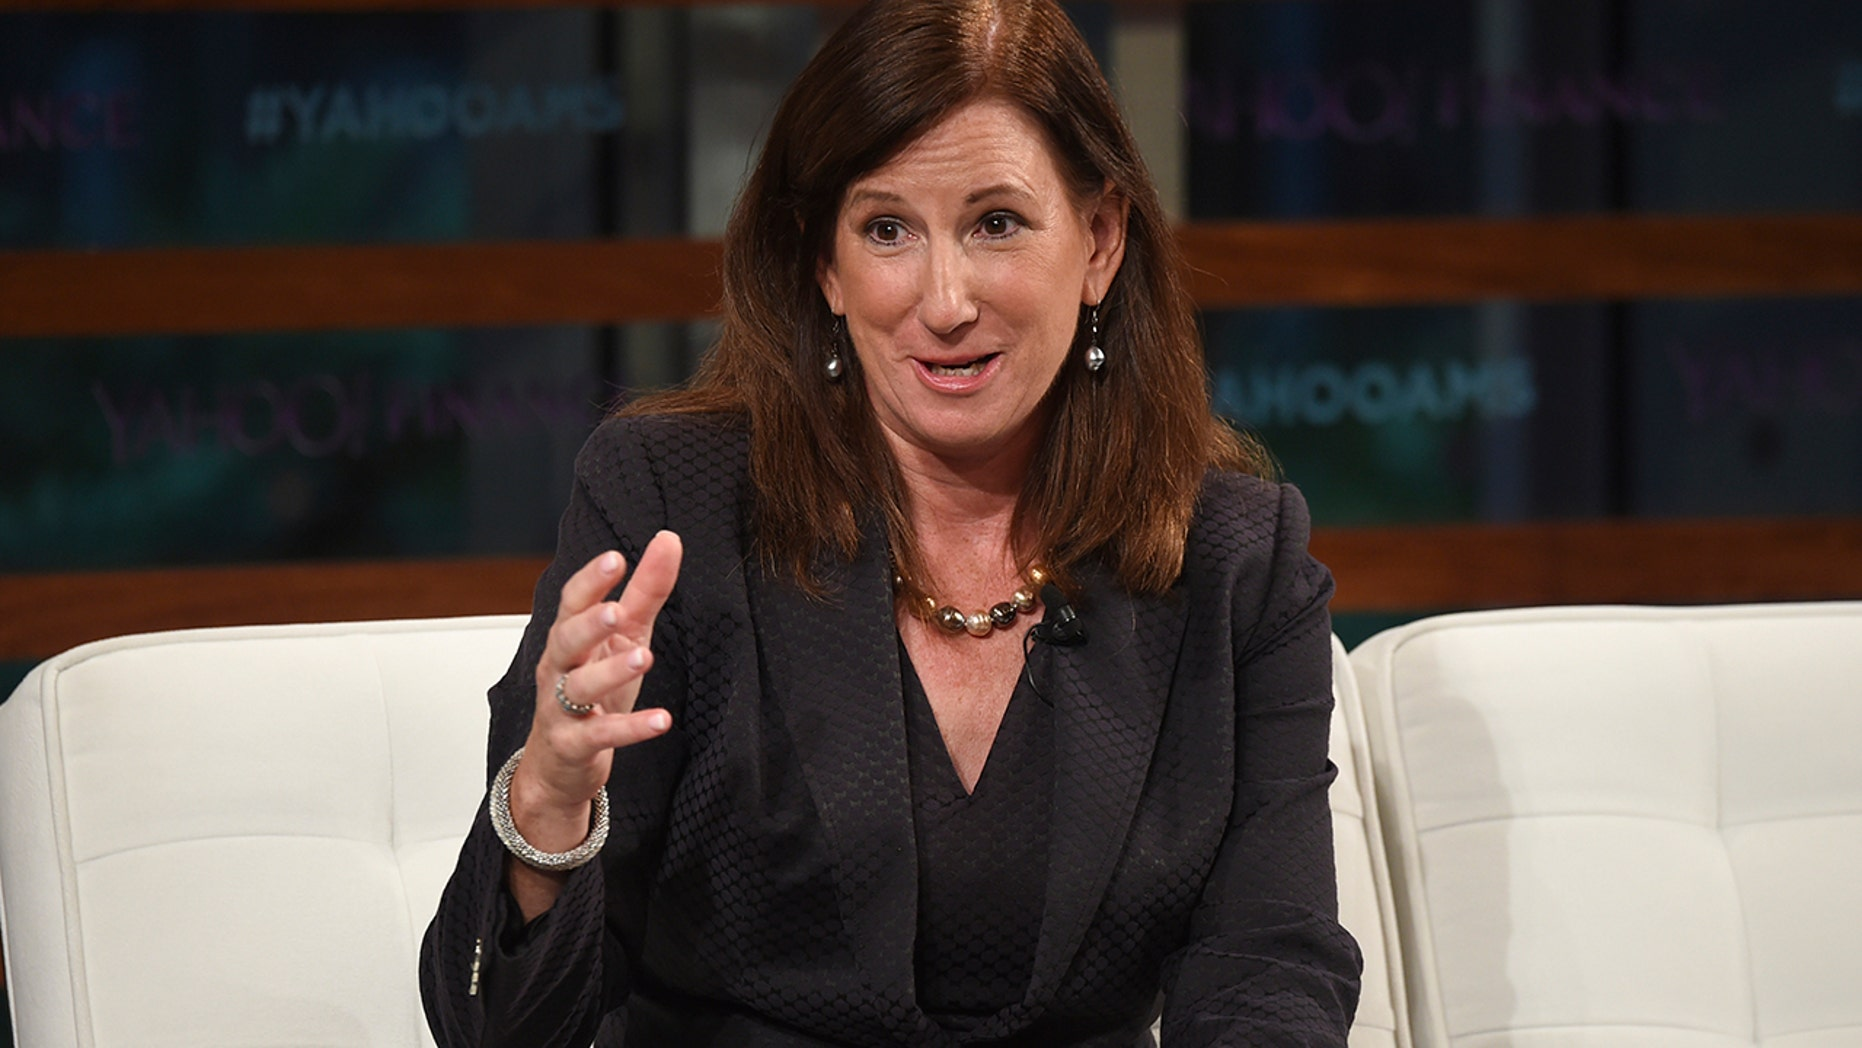 Deloitte CEO Cathy Engelbert participates in a Yahoo Finance All Markets Summit: A World of Change during The Times Center in New York. (Photo by Evan Agostini/Invision/AP, File)